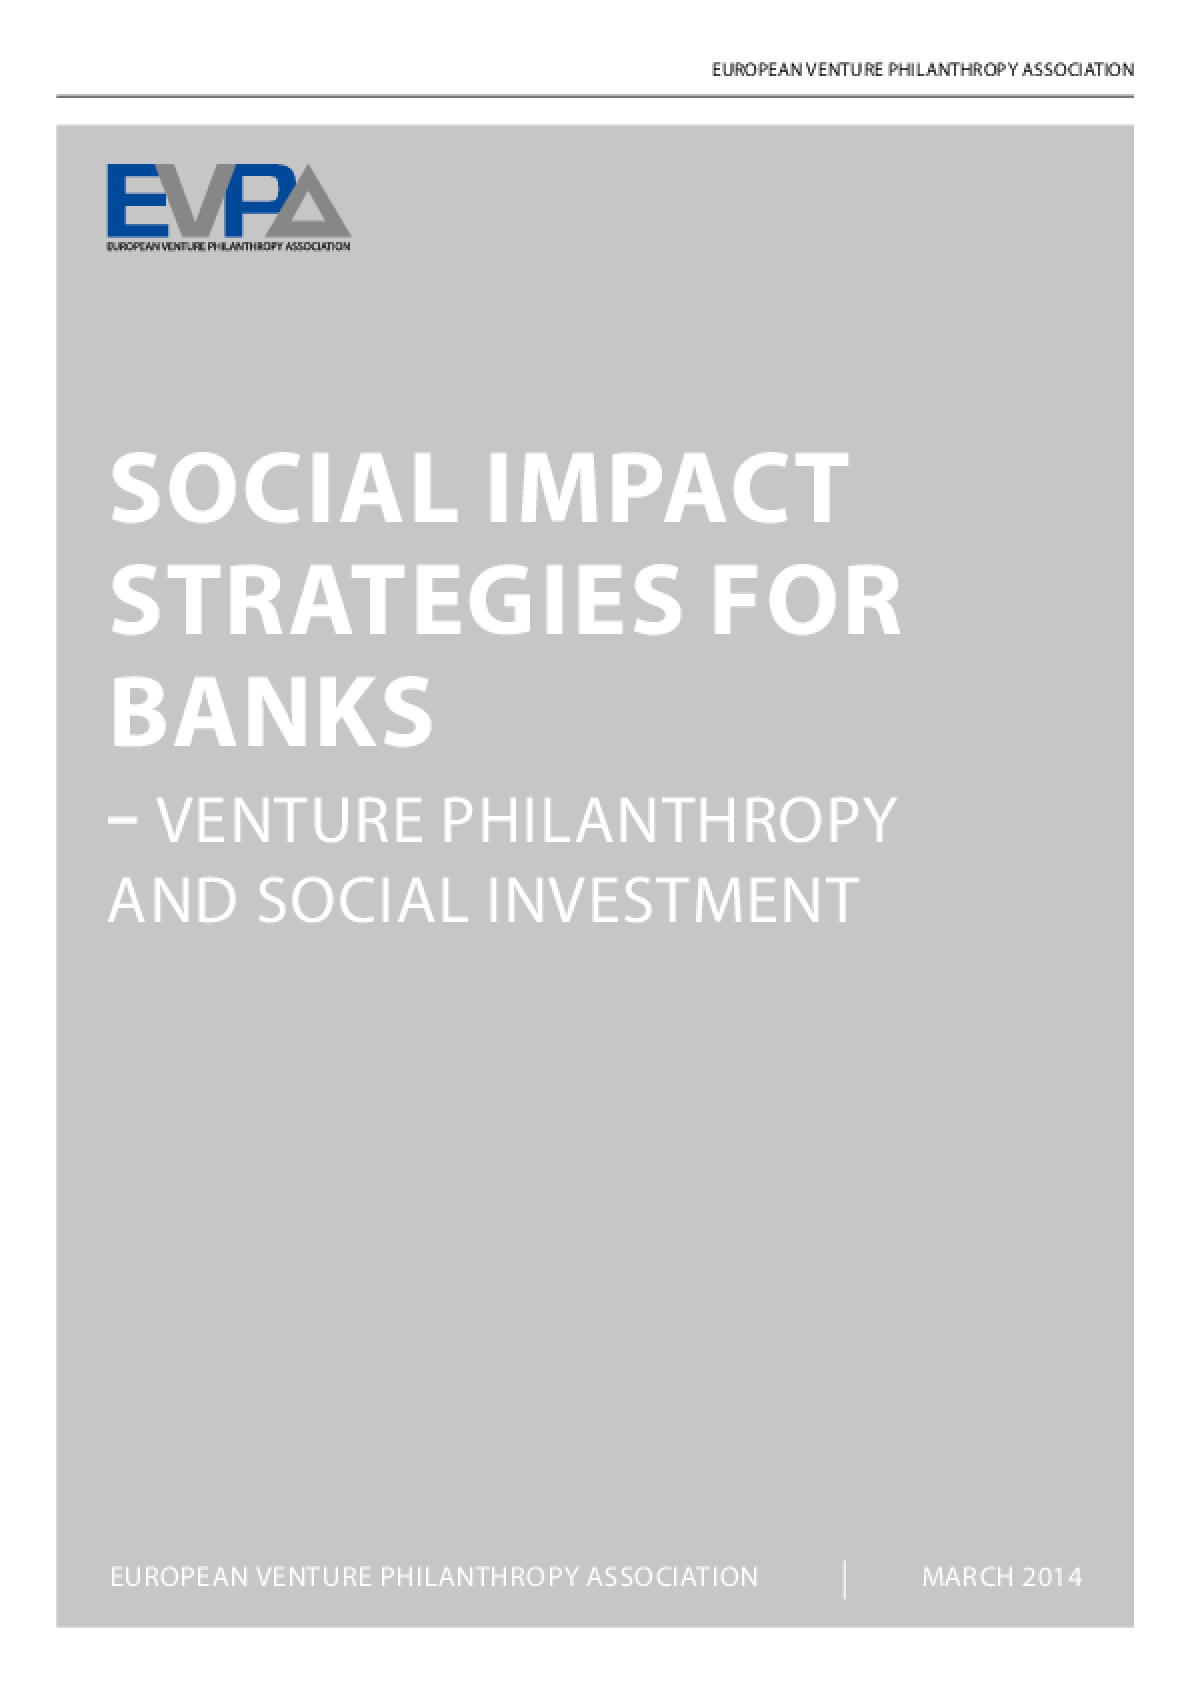 Social Impact Strategies for Banks: Venture Philanthropy and Social Investment